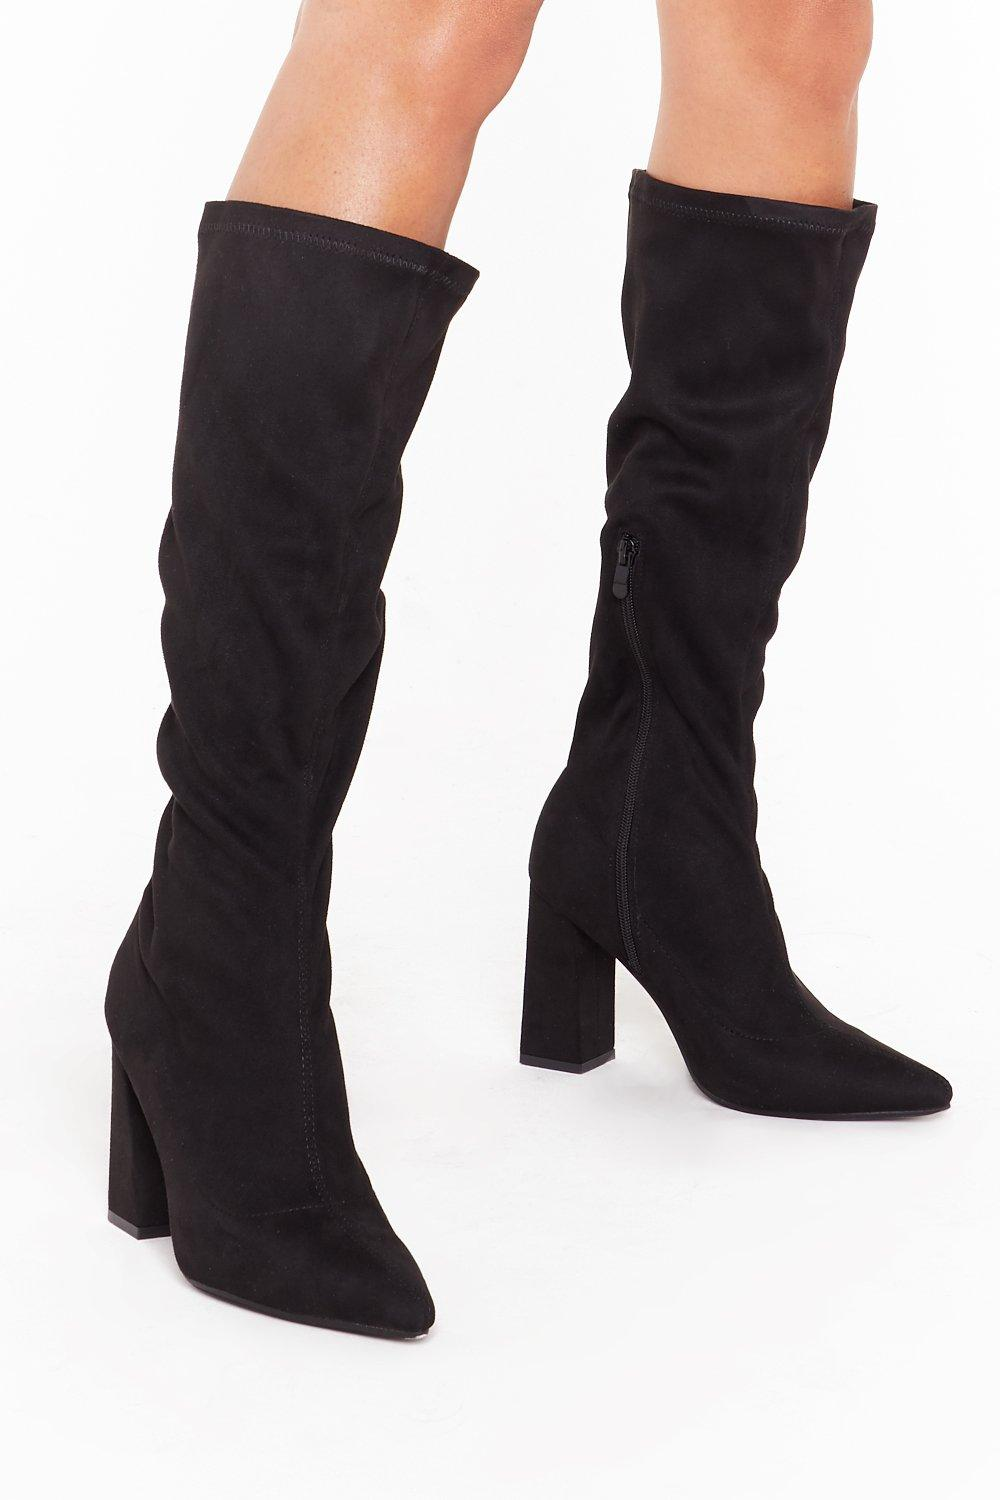 Image of Let Me Point Out Faux Suede Knee High Boots